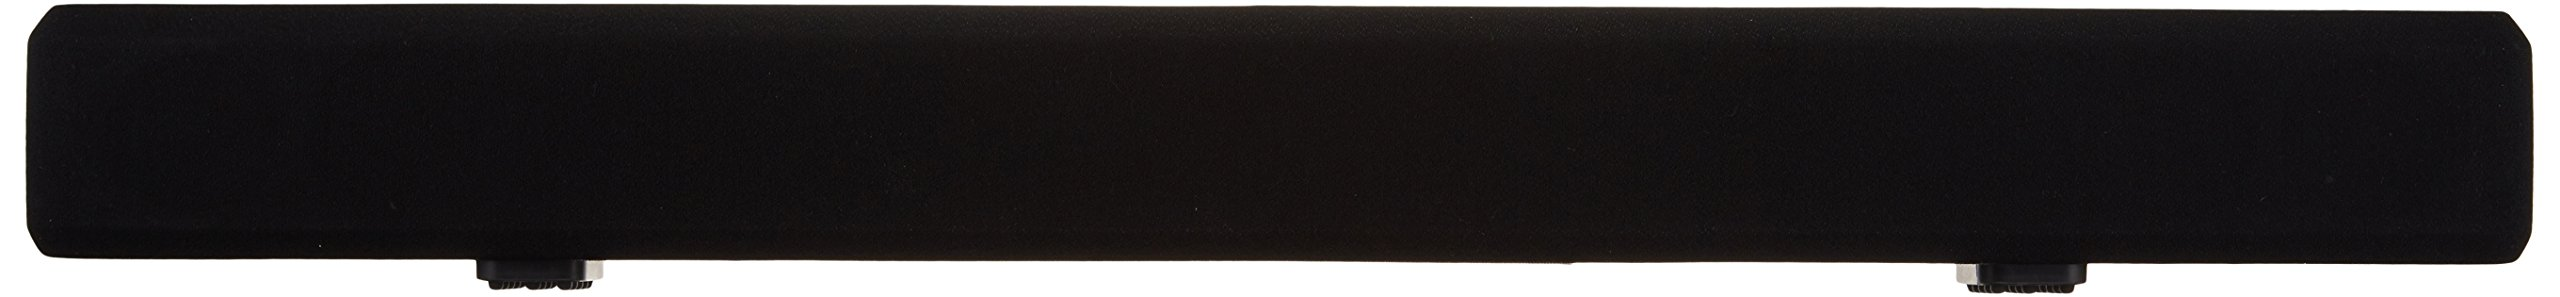 AmazonBasics 2.1 Channel Bluetooth Sound Bar with Built-In Subwoofer by AmazonBasics (Image #2)